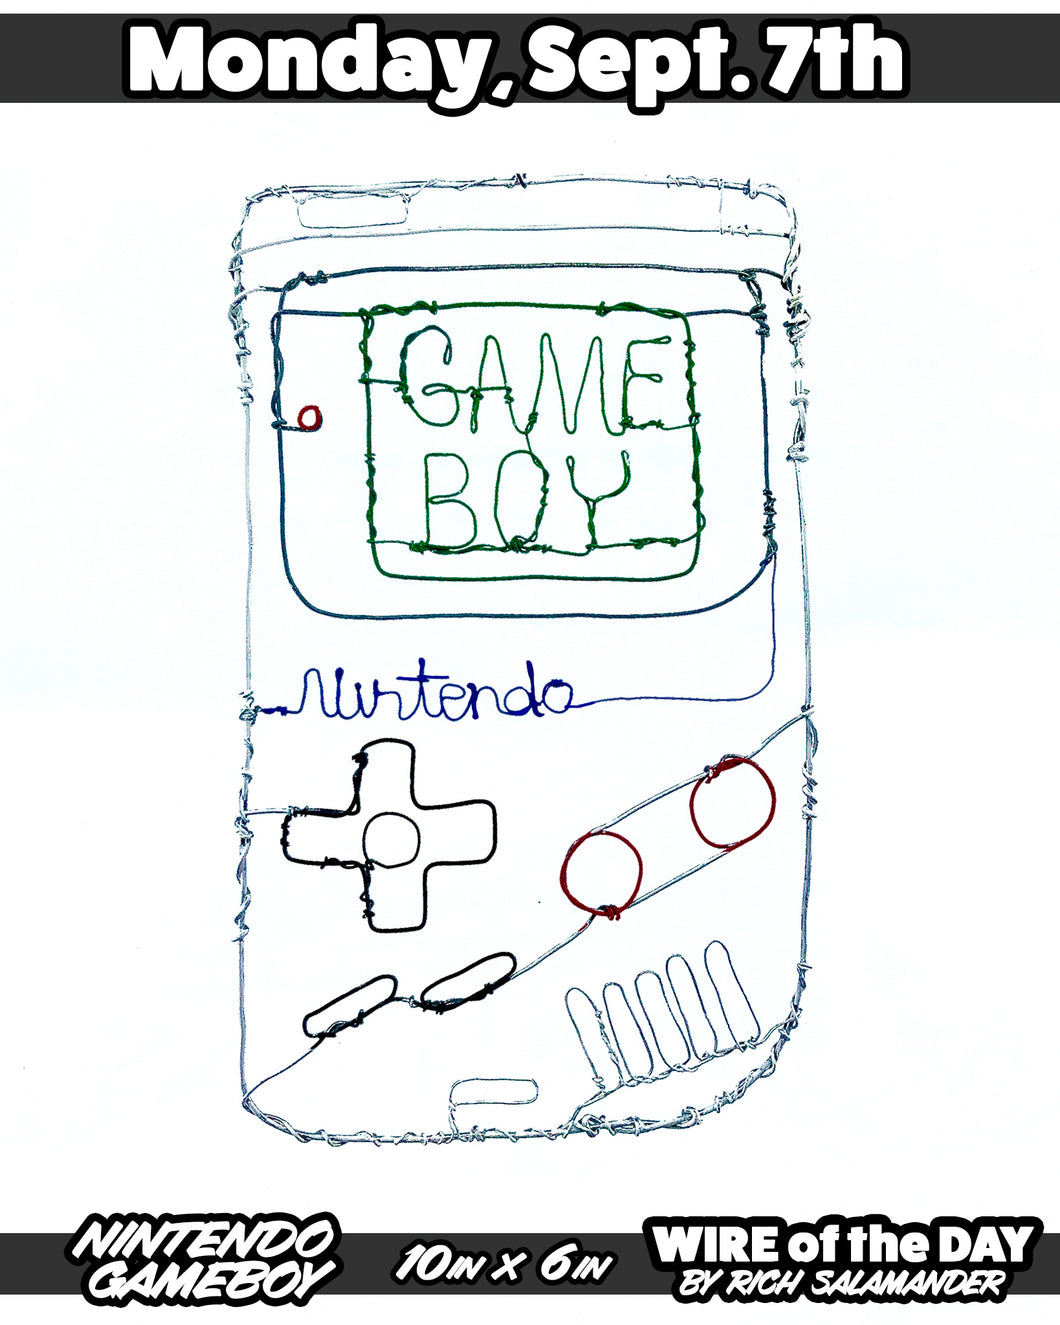 WIRE of the DAY NINTENDO GAMEBOY